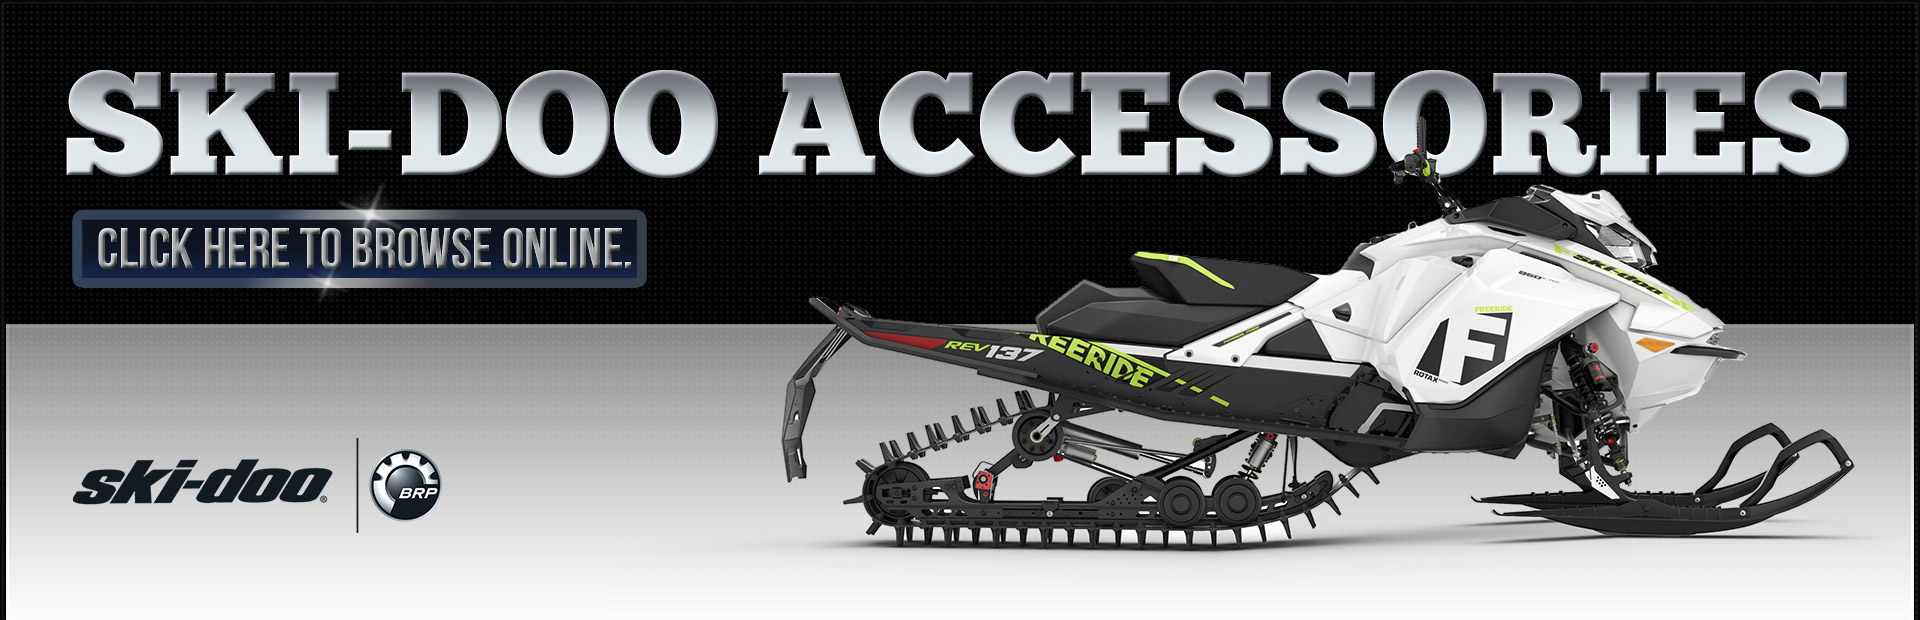 Click here to browse Ski-Doo accessories online.